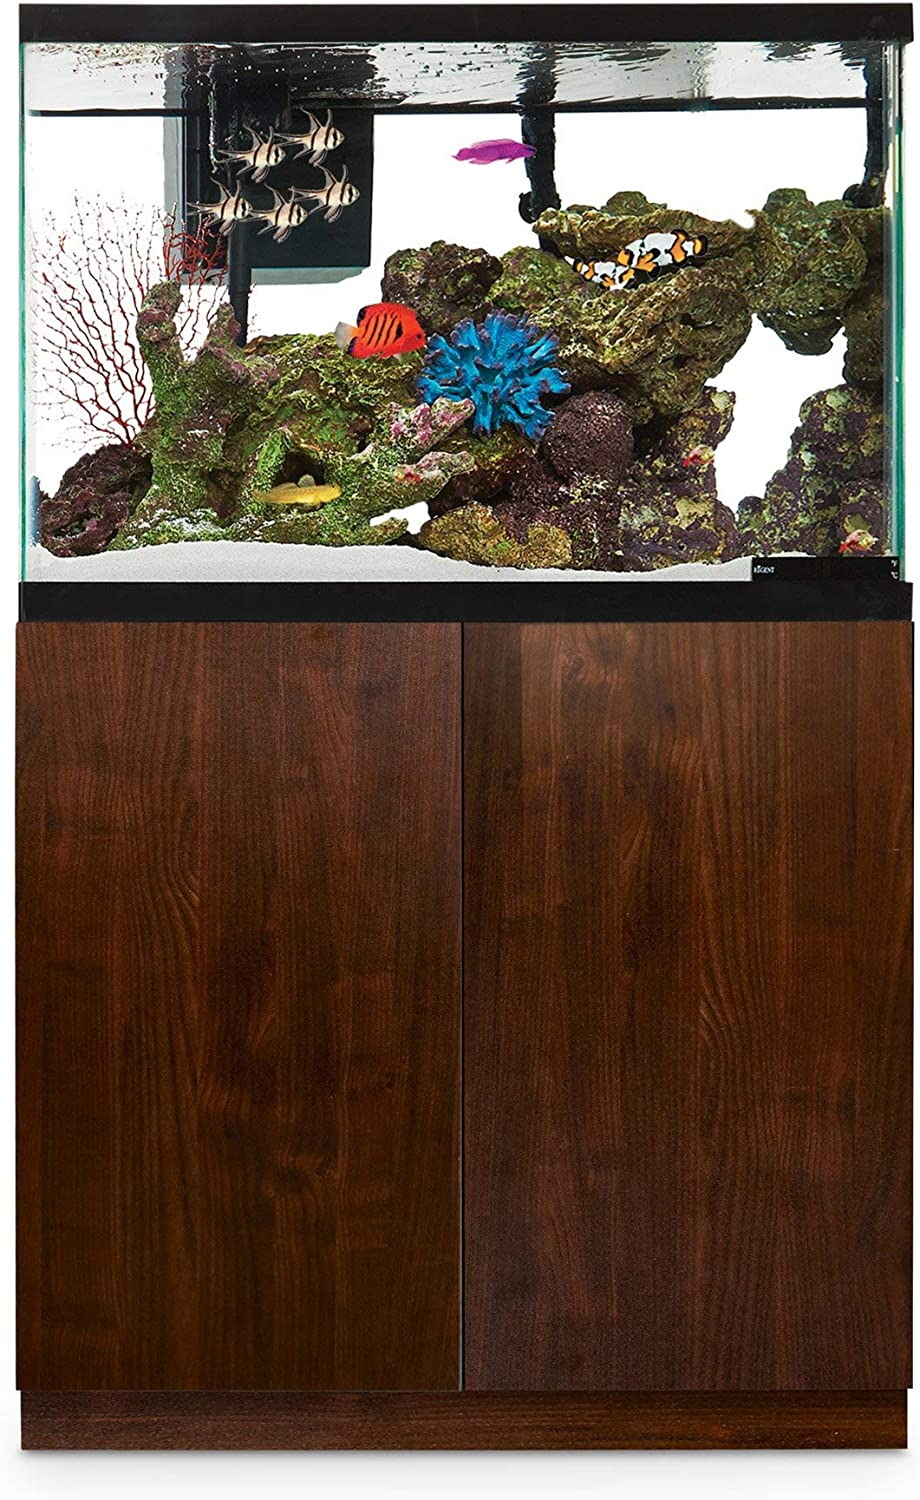 Imagitarium Faux Woodgrain best 40 Gallon Tank Stand